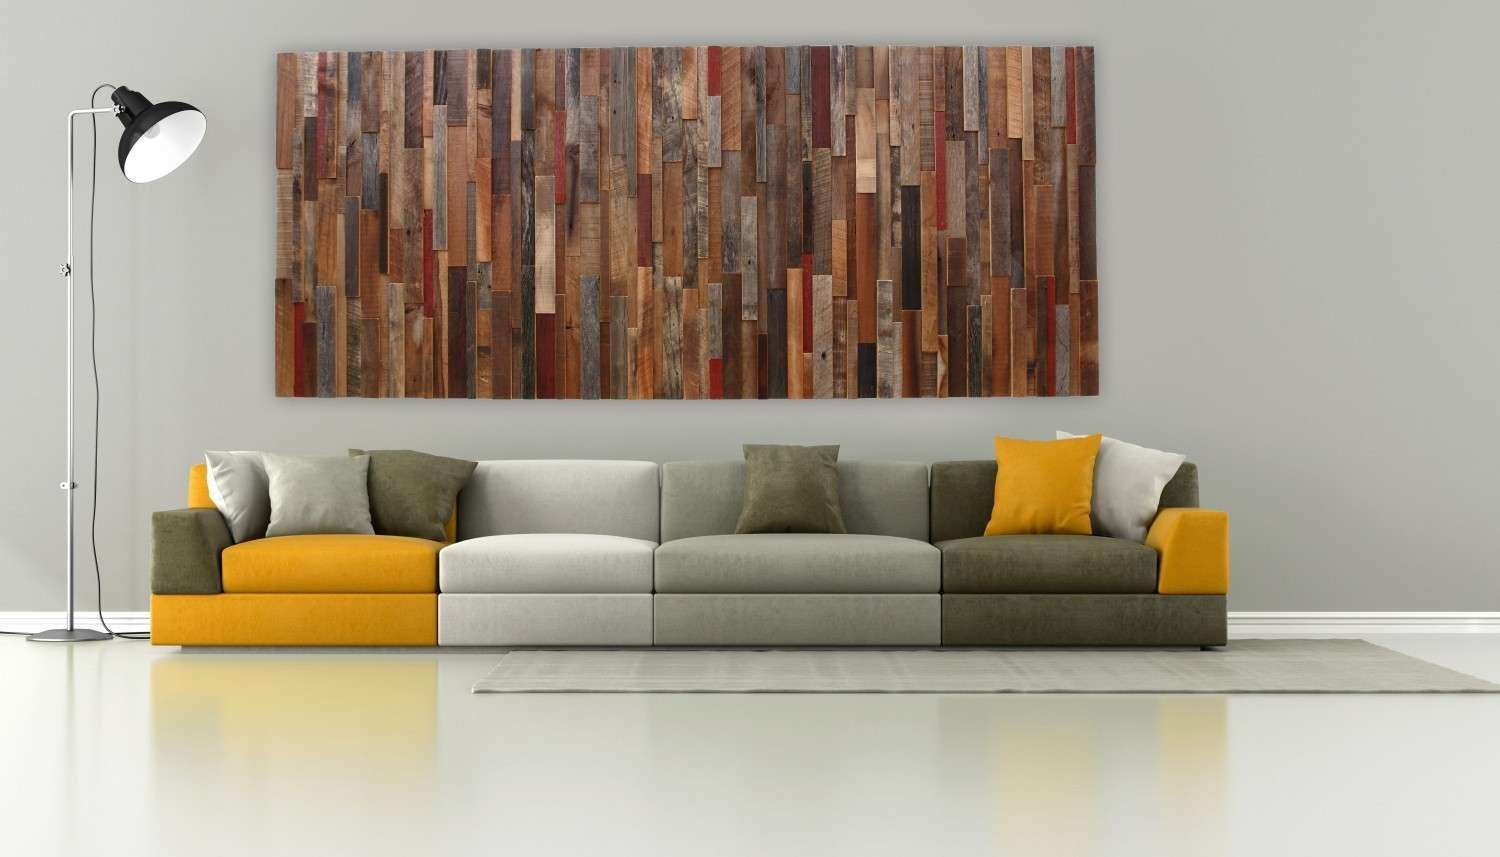 Wall Art for Impressive Home Decor Furniture and